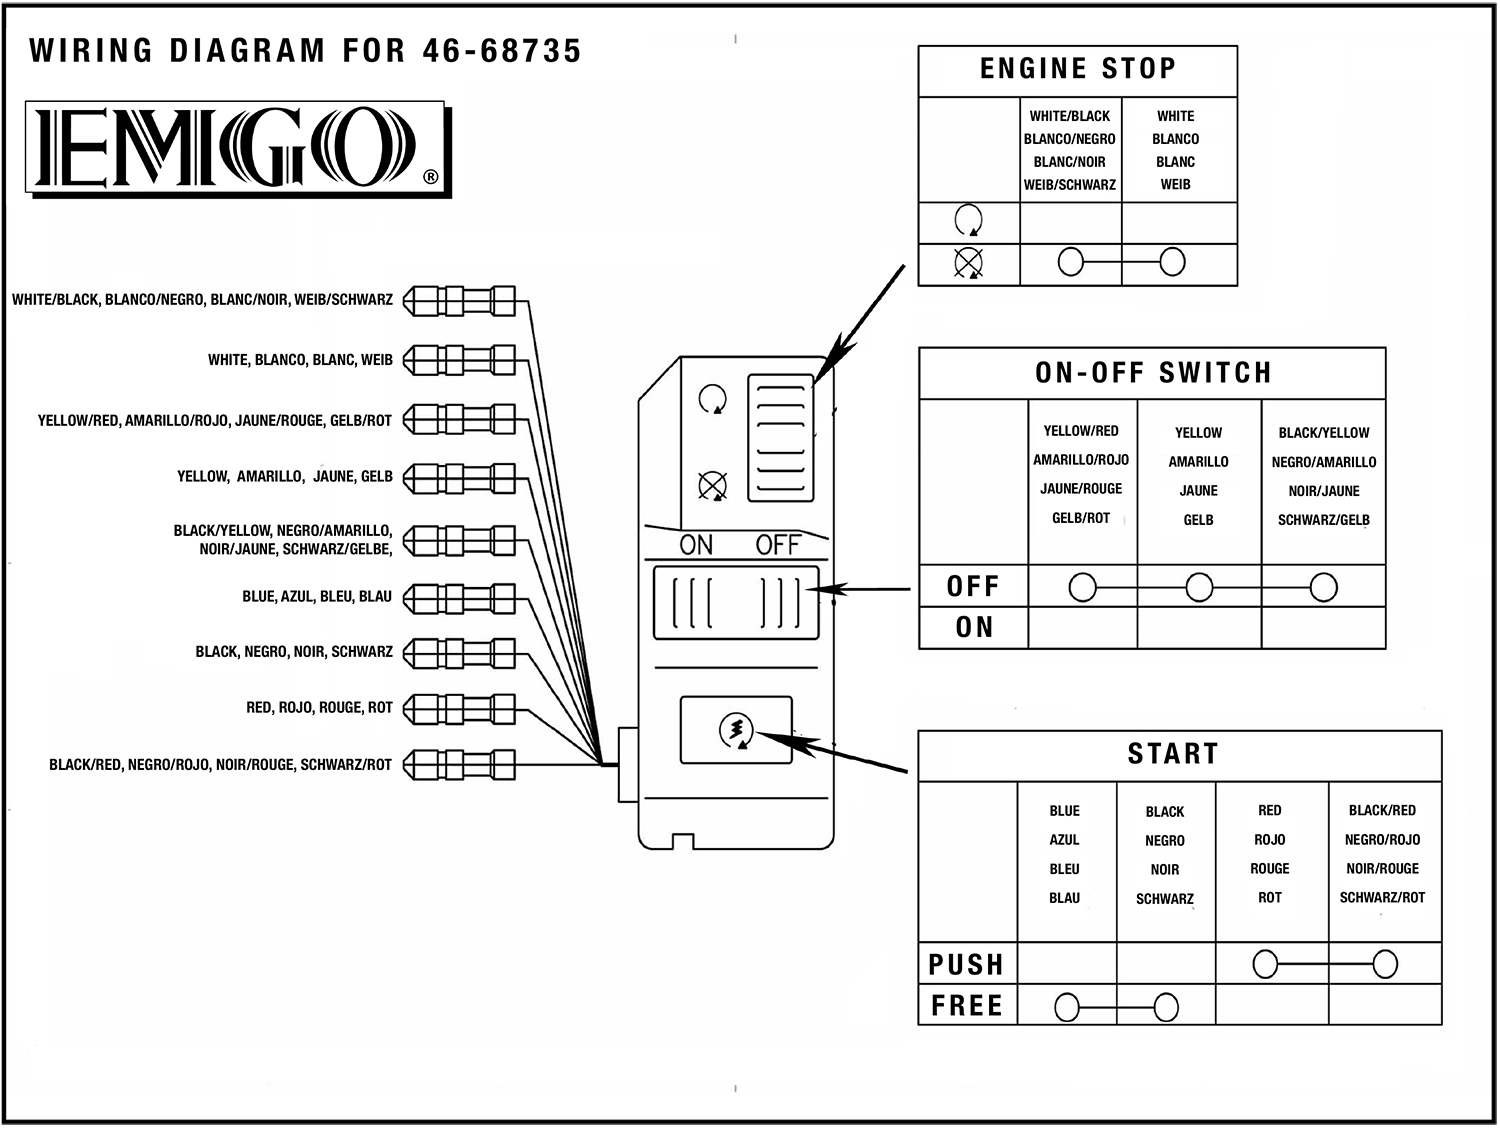 46 68735 wiring diagram emgo universal multi switch handlebar motorcycle dual sport cafe pin out right?t\=1490388975 emgo coil wiring diagram vw coil wiring \u2022 indy500 co emgo universal ignition coil wiring diagram at bakdesigns.co